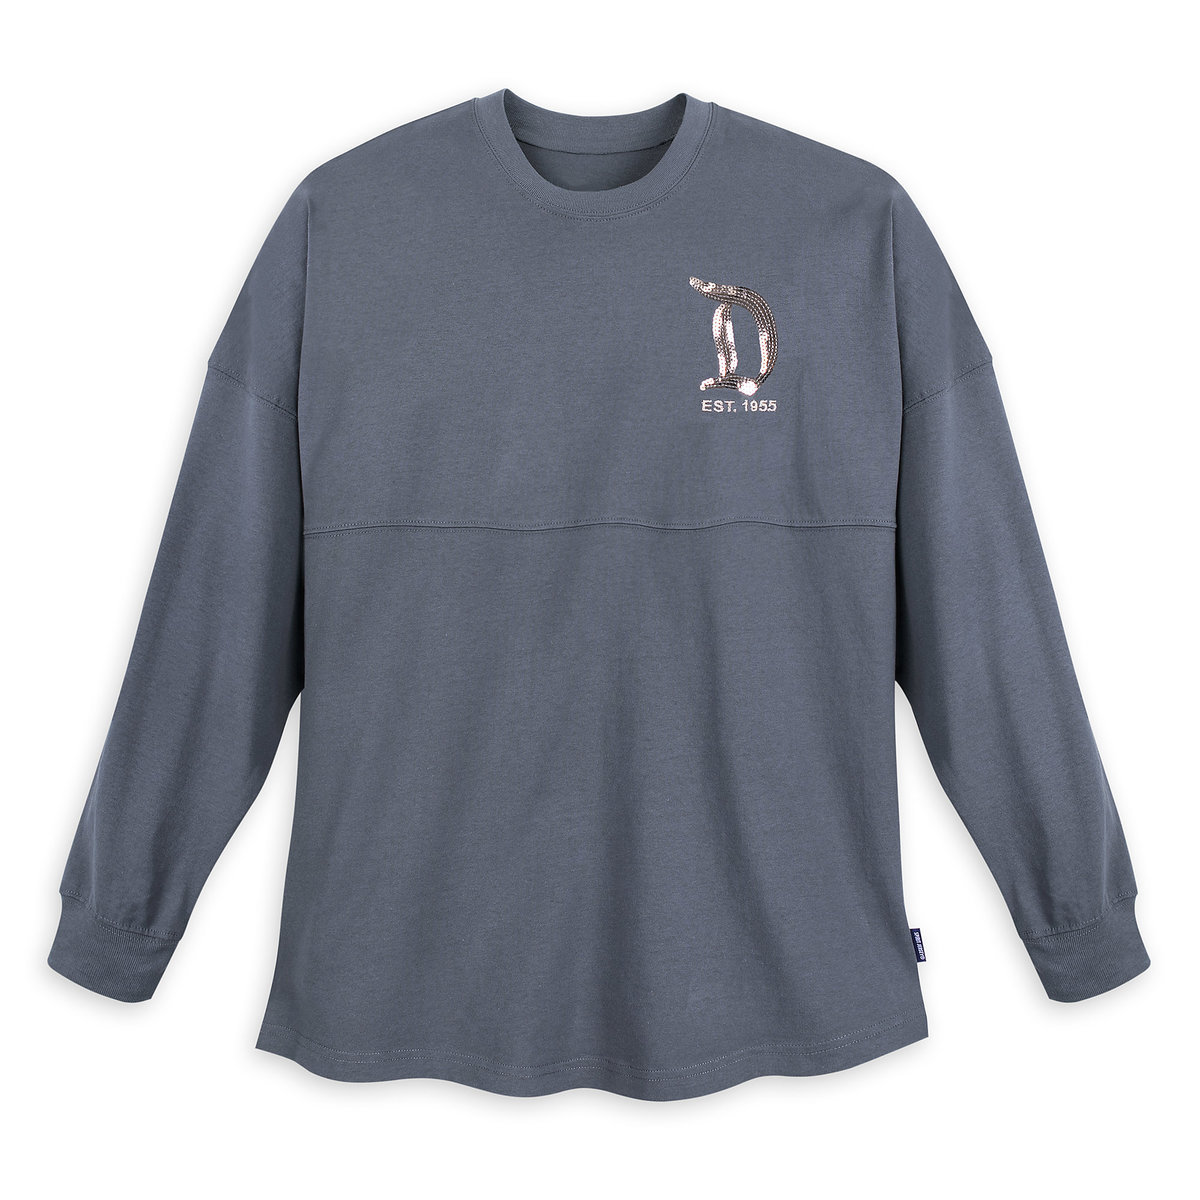 c80e5658 Product Image of Disneyland Sequin Spirit Jersey for Adults - Briar Rose  Gold # 1